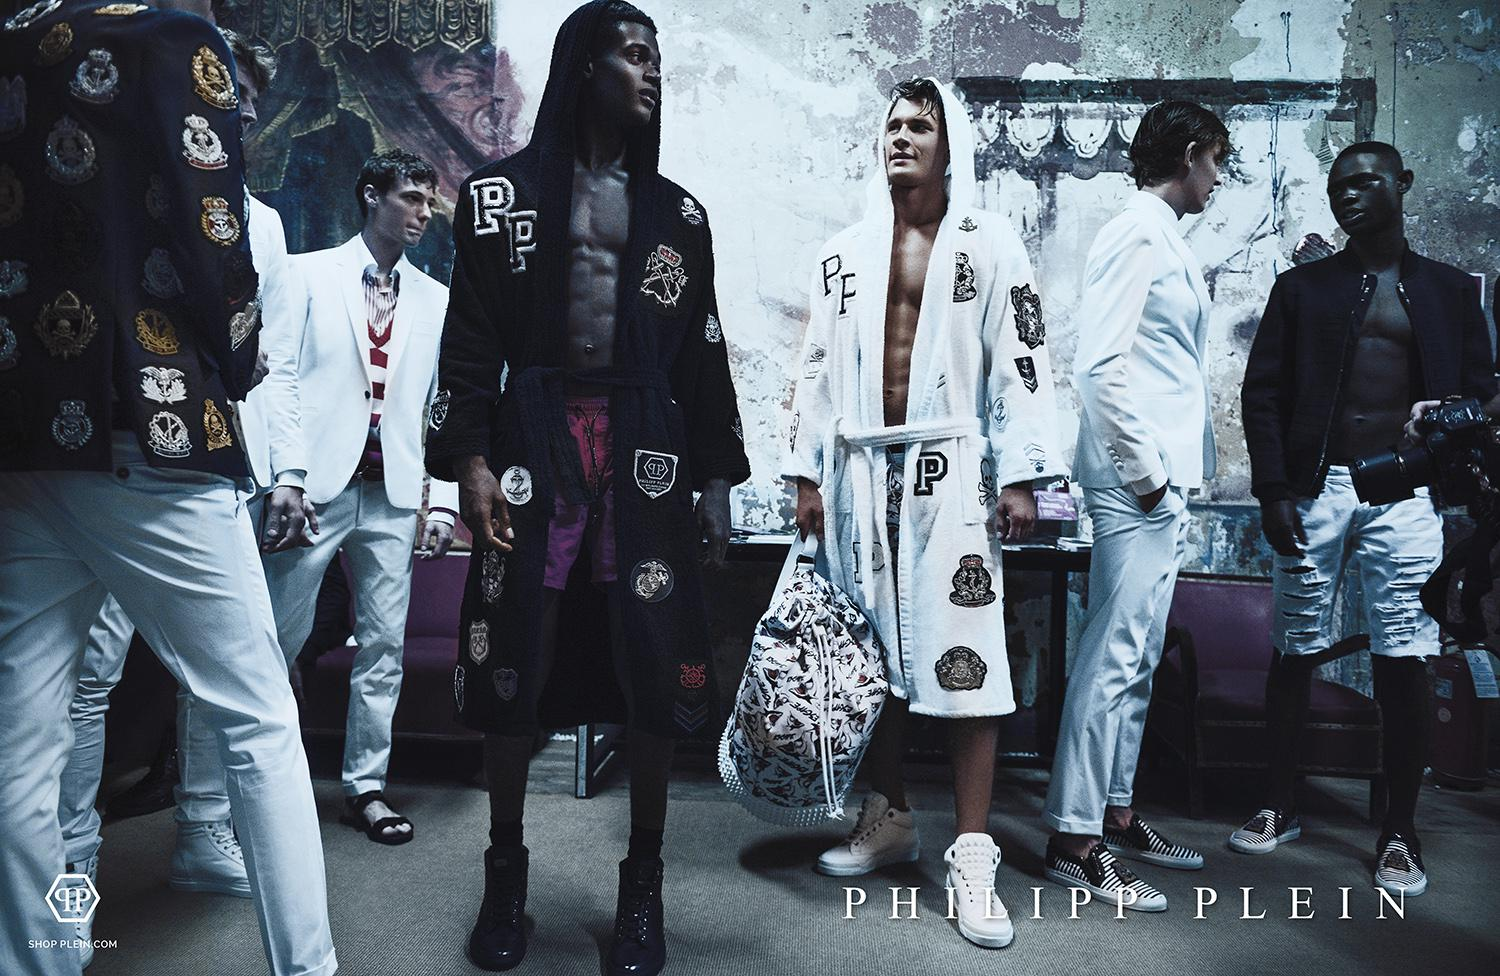 philipp_plein_ss15_men_campaign_2_low-2-20150119025610.jpg